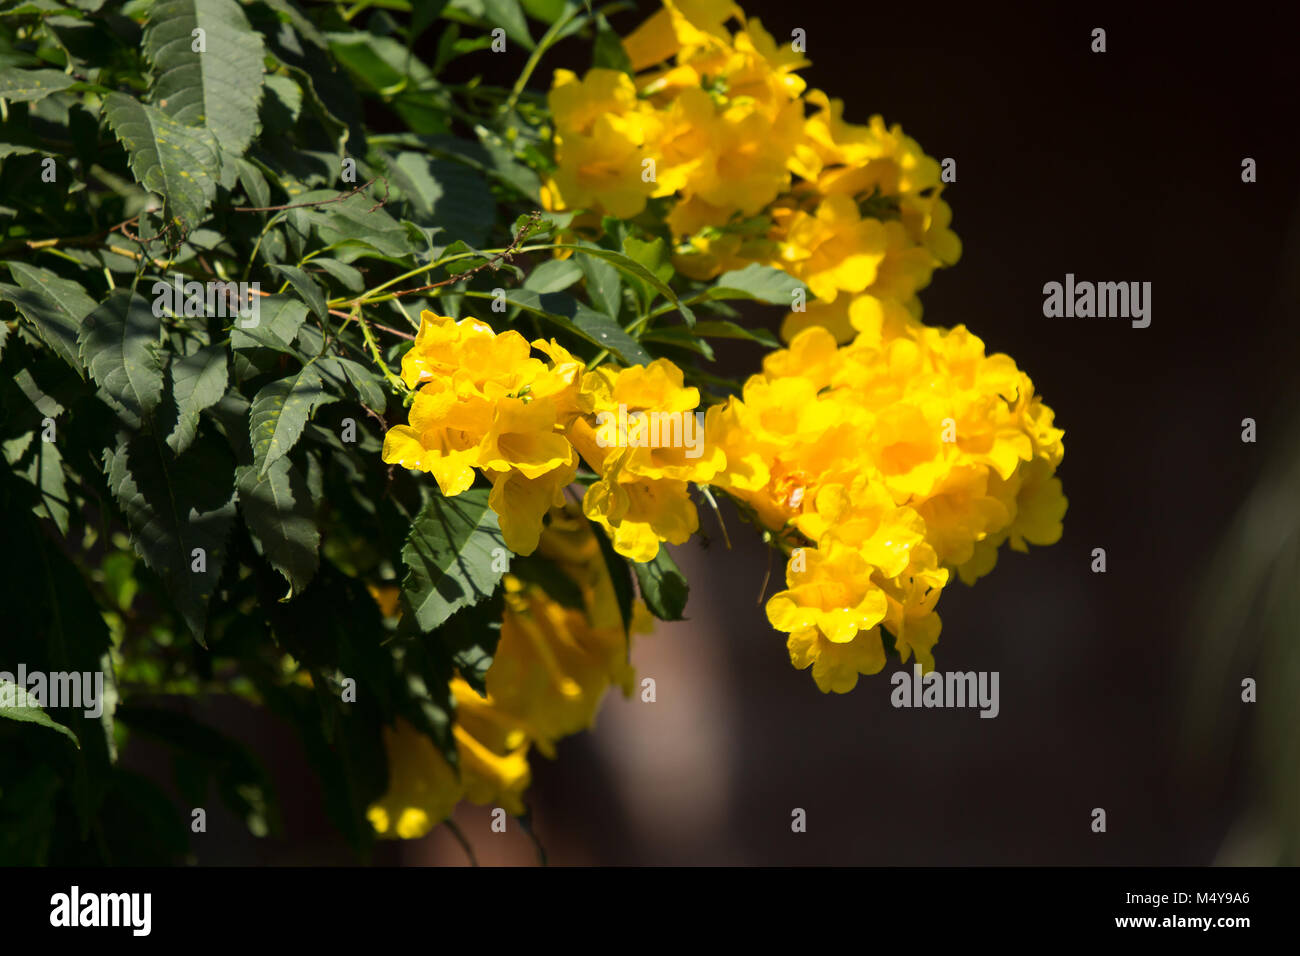 Tecoma Stans Stock Photos Tecoma Stans Stock Images Page 2 Alamy